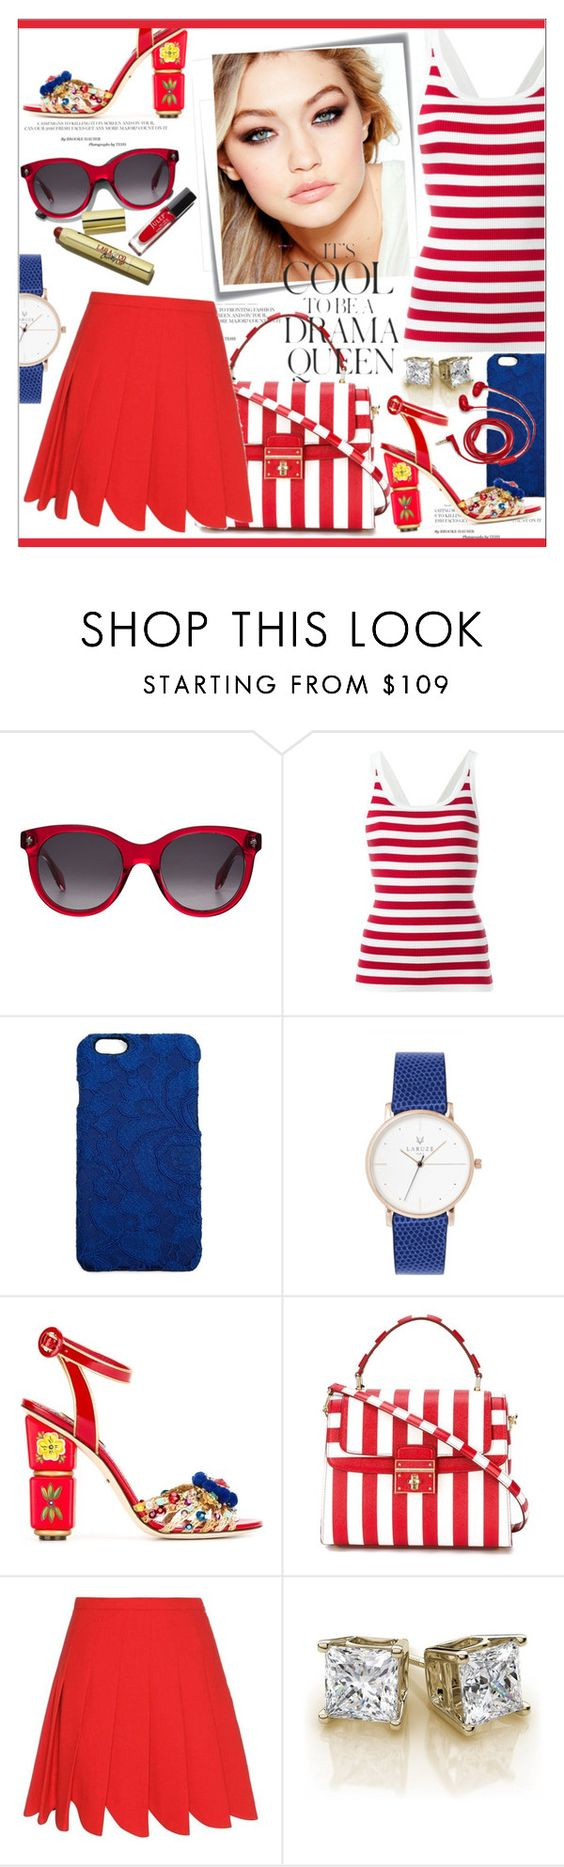 """""""Marine Layer * Striped Shirts"""" by calamity-jane-always ❤ liked on Polyvore featuring Alexander McQueen, Dolce&Gabbana, Post-It, Maybelline, Miu Miu, Emma Watson, FOSSIL, dolcegabbana, fashionset and stripedshirt"""